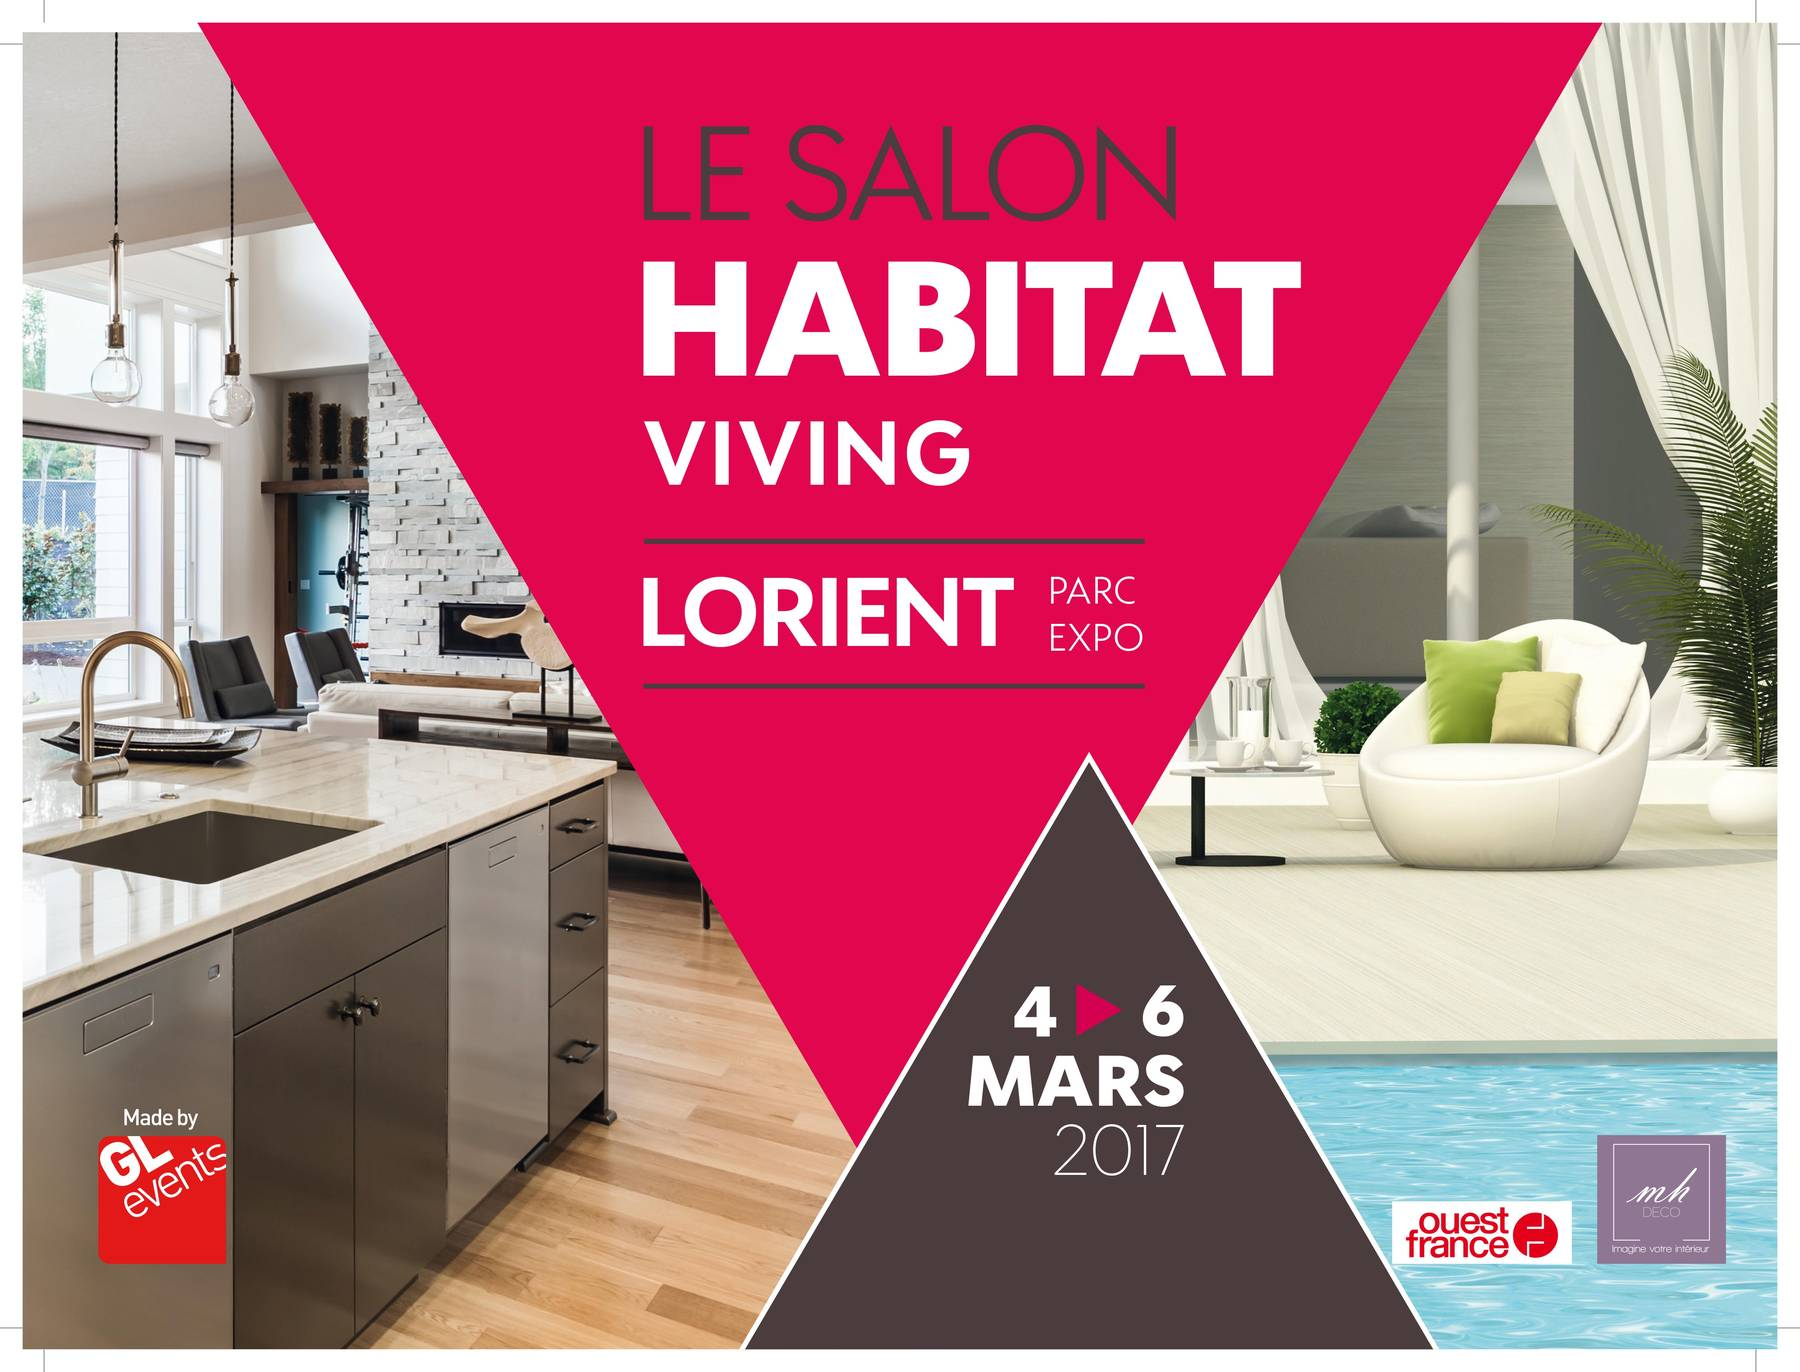 Salon viving habitat lorient 4 5 et 6 mars 2017 for Salon de l habitat a vannes 2017